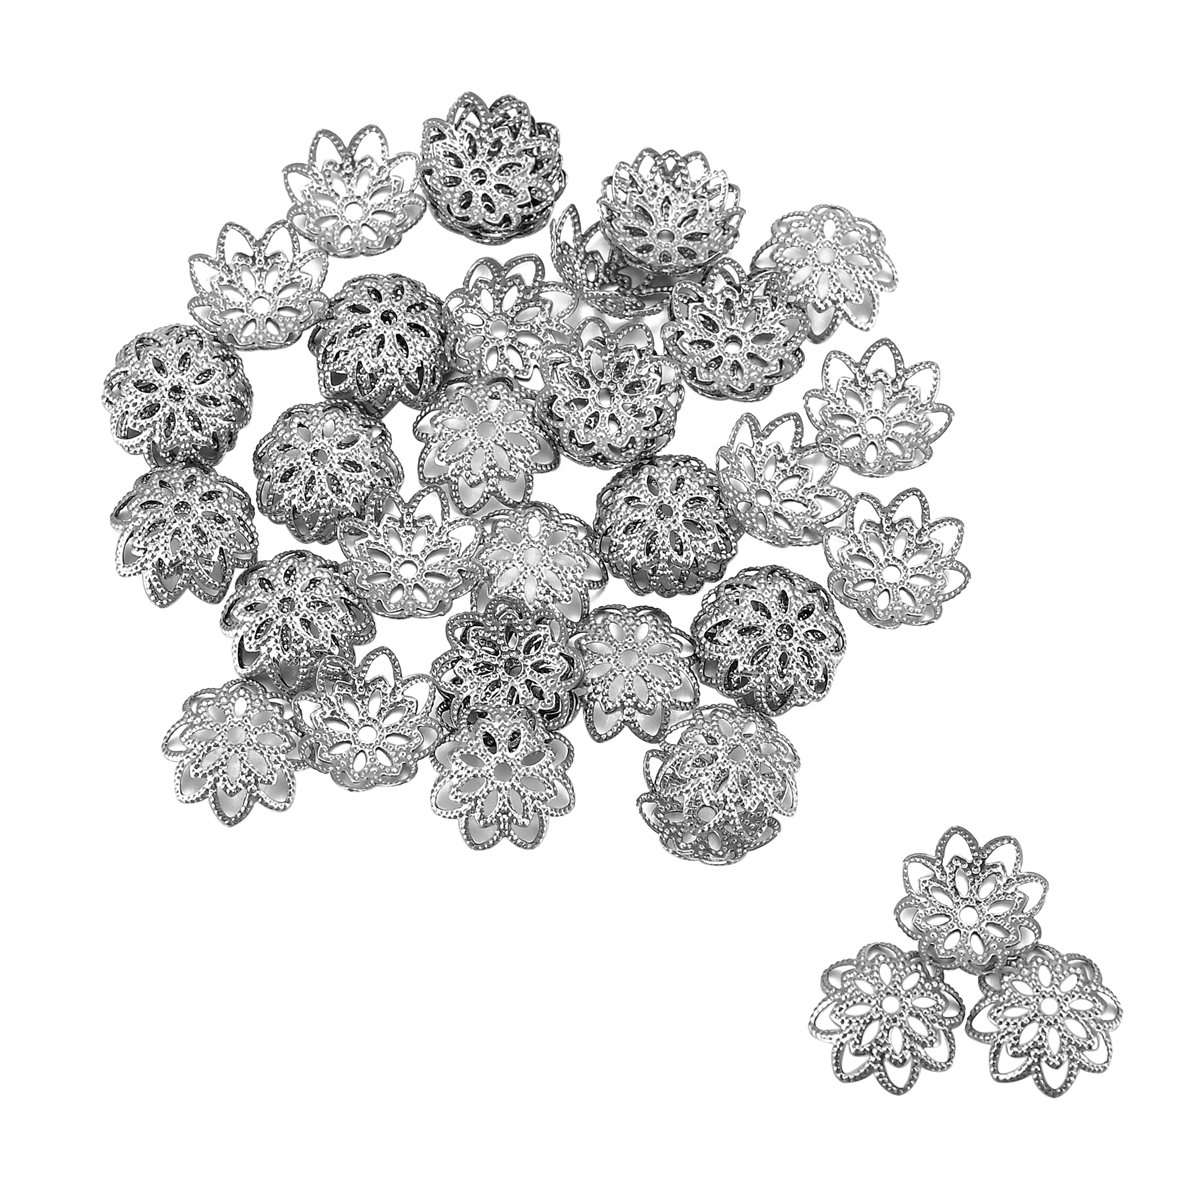 HOUSWEETY 50PCs Stainless Steel Silver Tone Flower Bead Caps for Jewelry Making Findings 10mmx10mm HOUSWEETYB111758